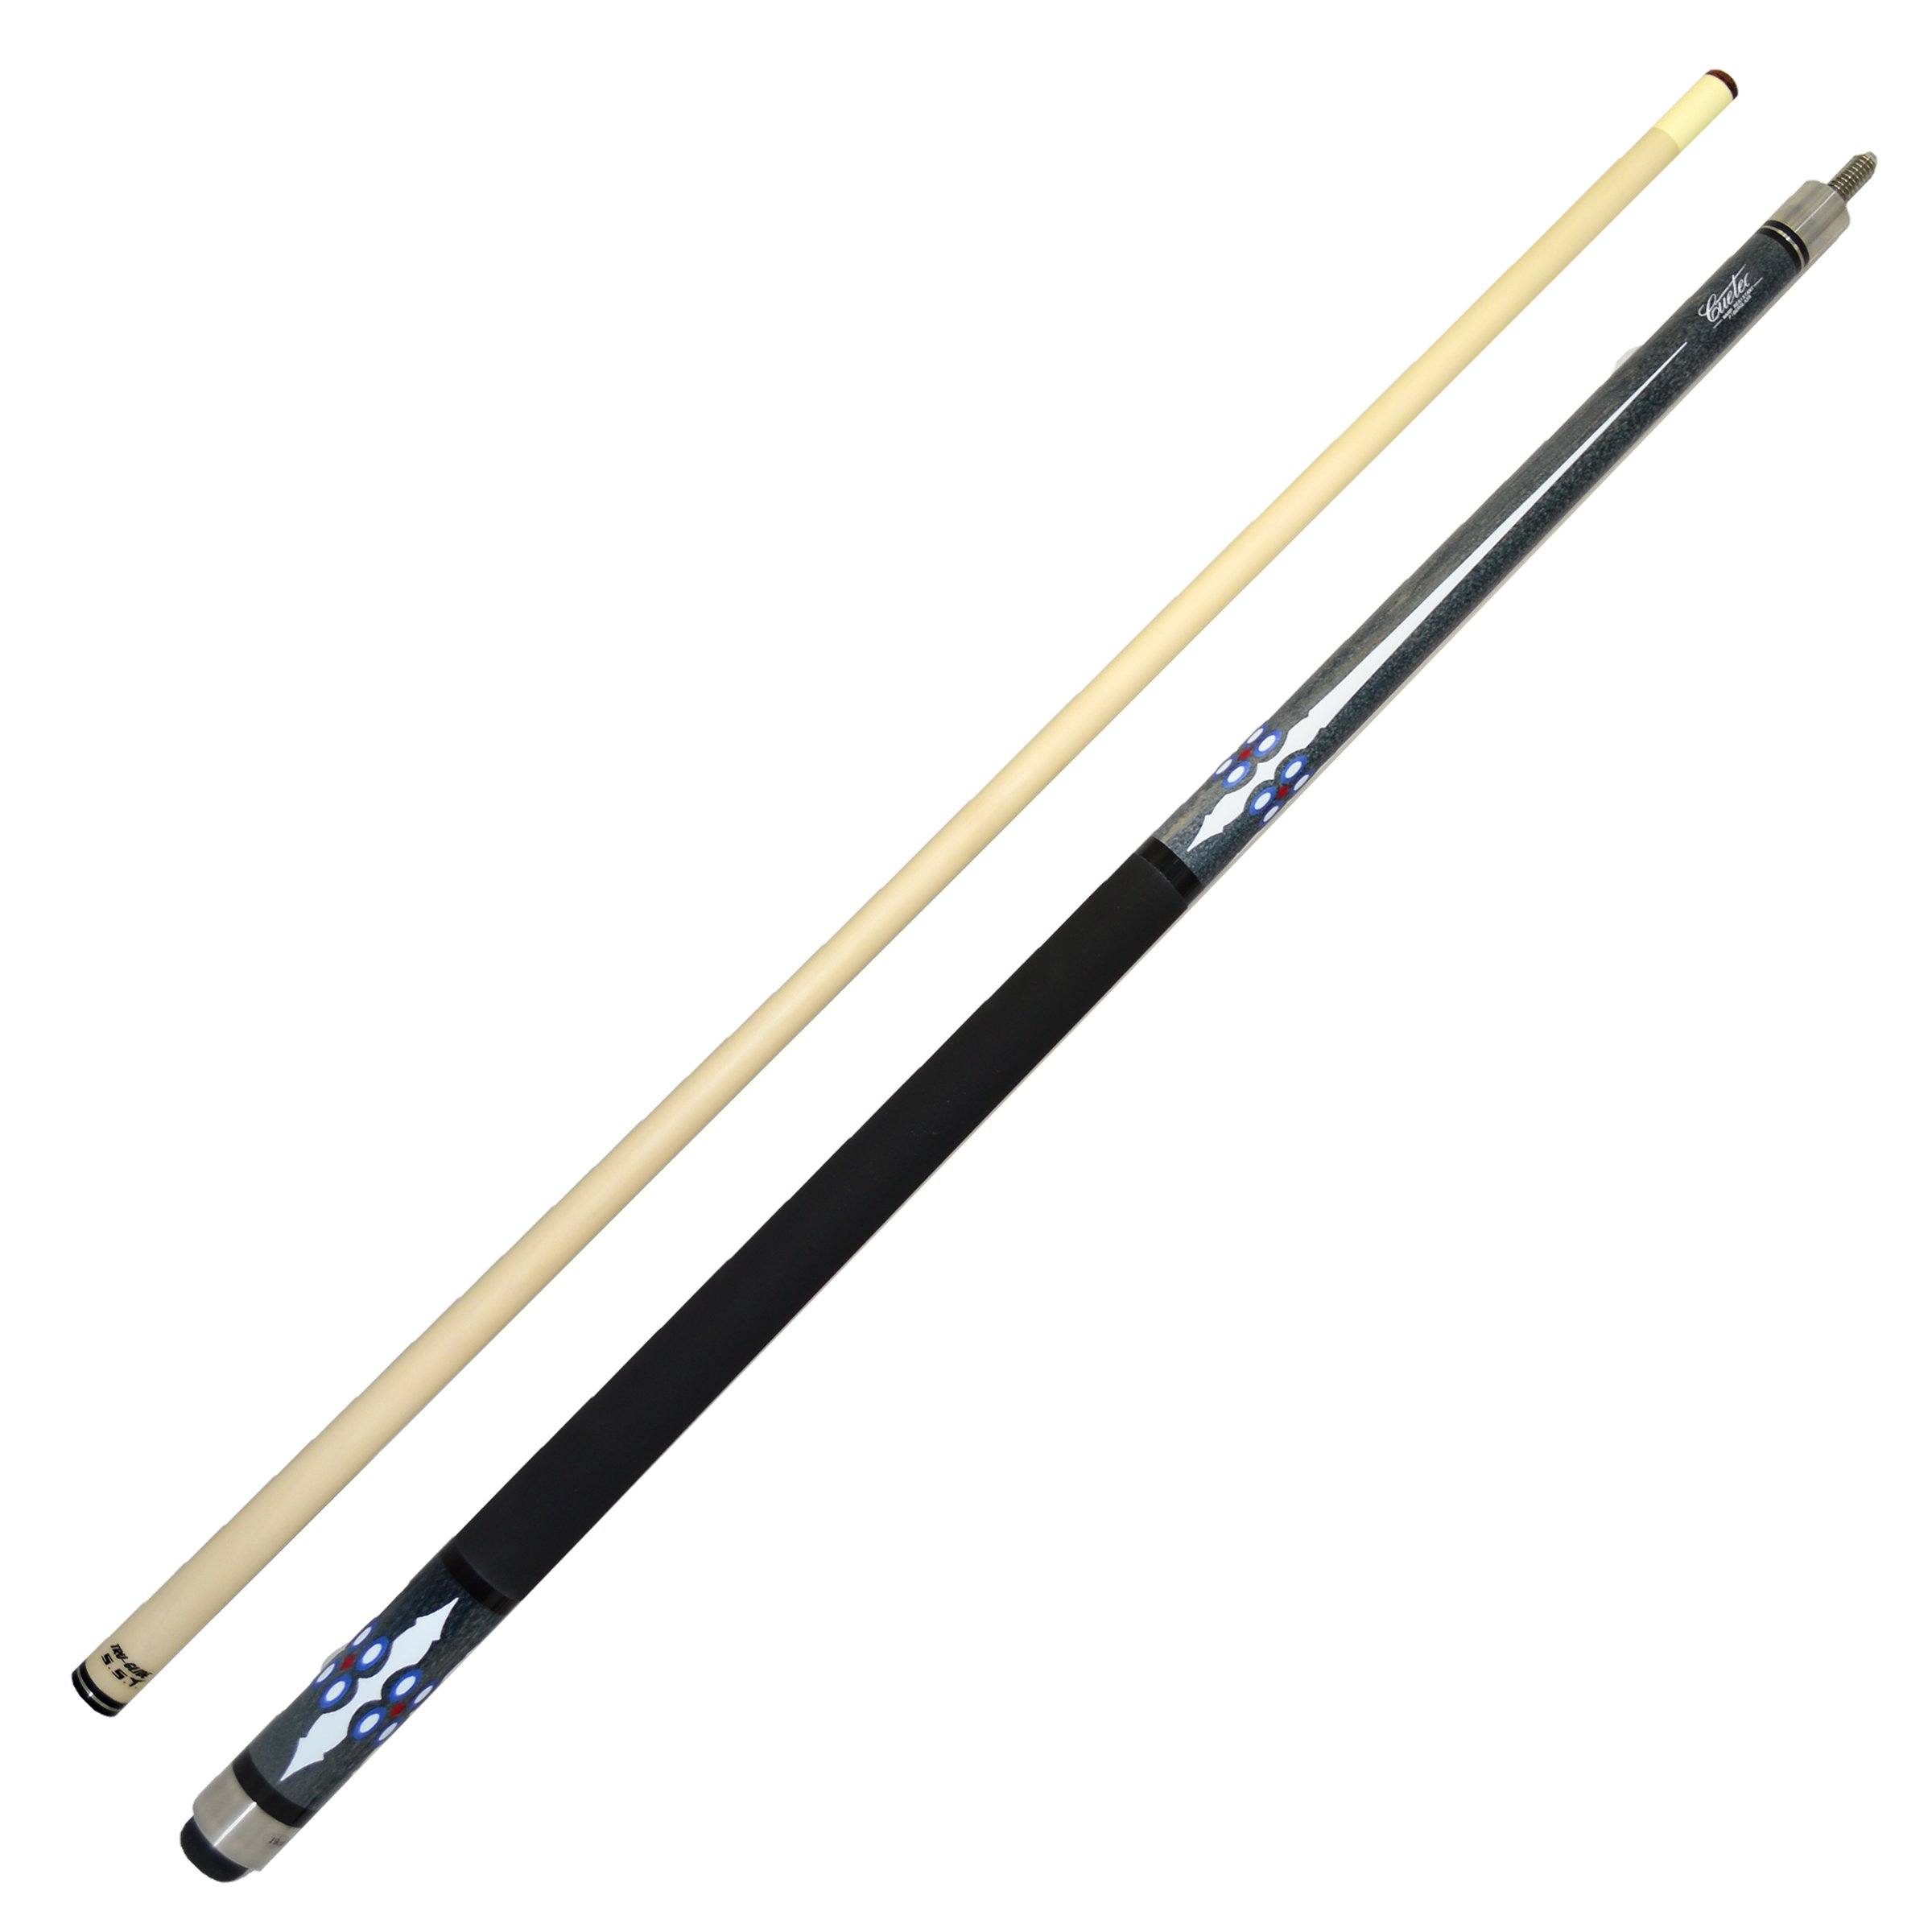 Cuetec Denali Series 58'' 2-Piece Canadian Maple Billiard/Pool Cue, Grey with White Points